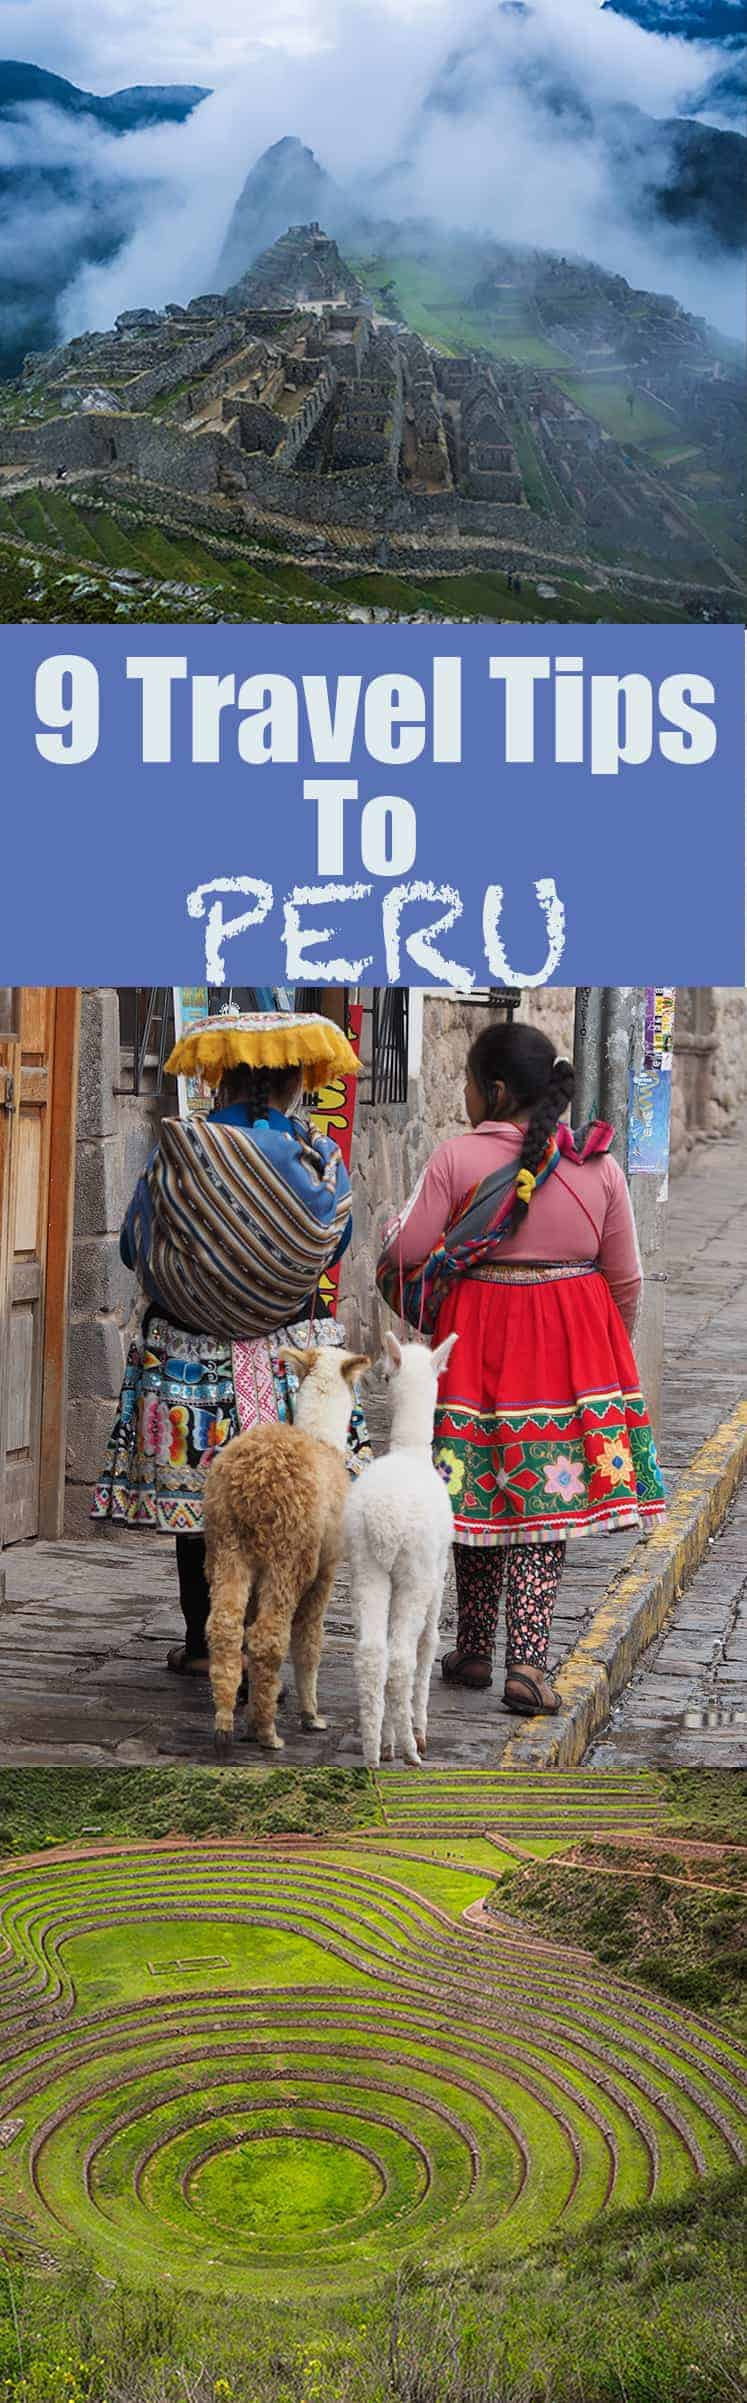 Travel Tips to peru, how to get into Lima after arrival? What sim card should you get